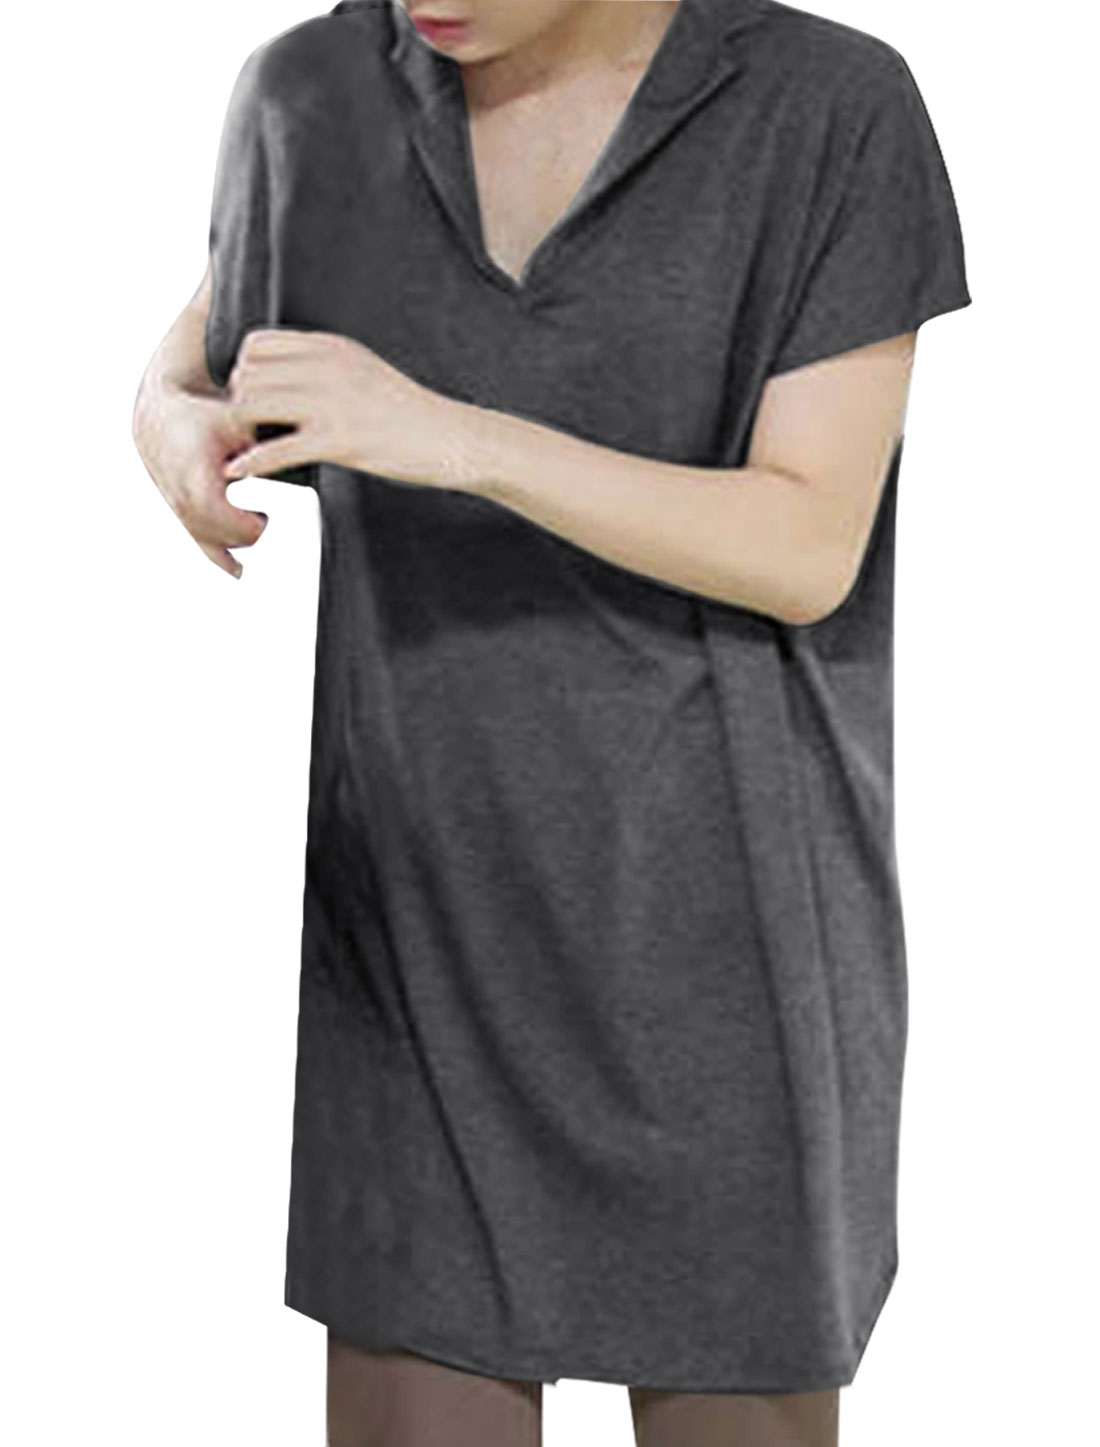 Ladies Pure Gray Color Short Dolman Sleeve Loose Tunic Top Shirt M